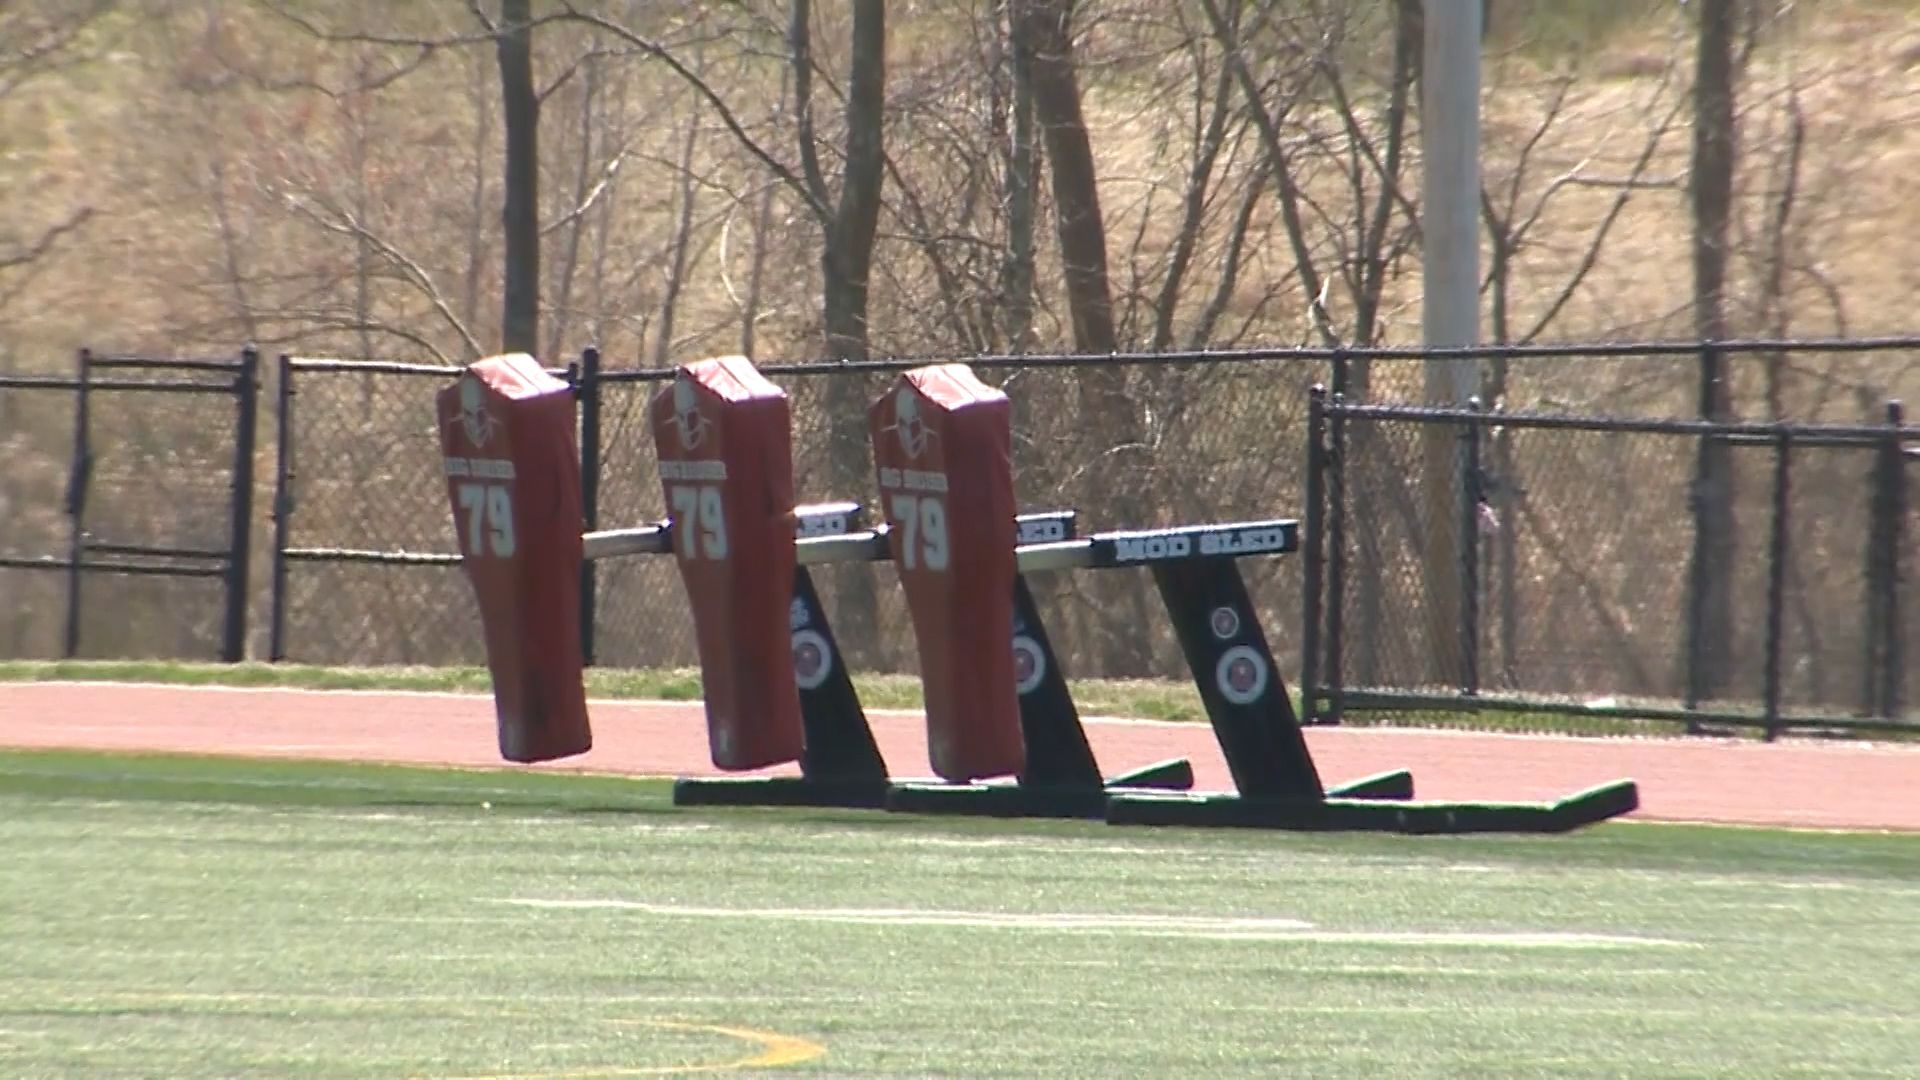 Massachusetts town makes COVID-19 pooled testing mandatory for students in sports, clubs